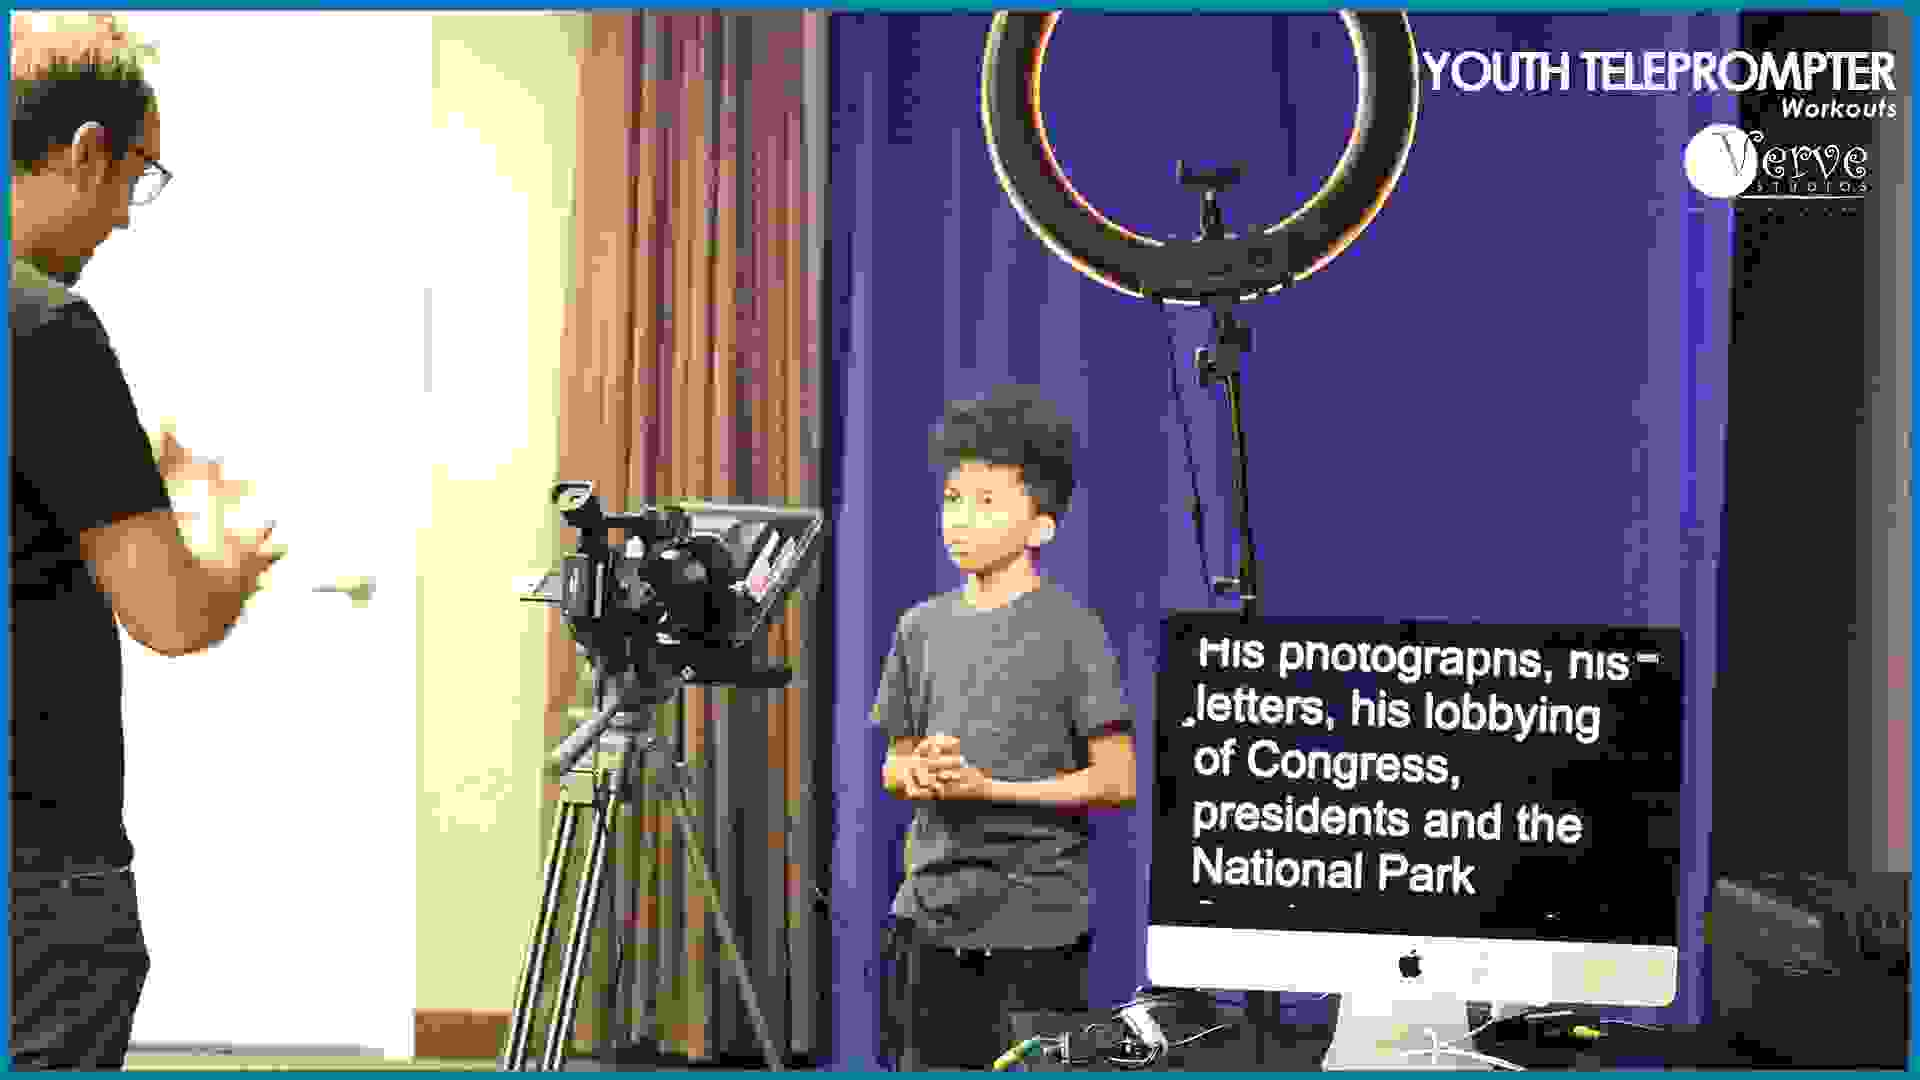 Verve Studios TelePrompTer Workshop